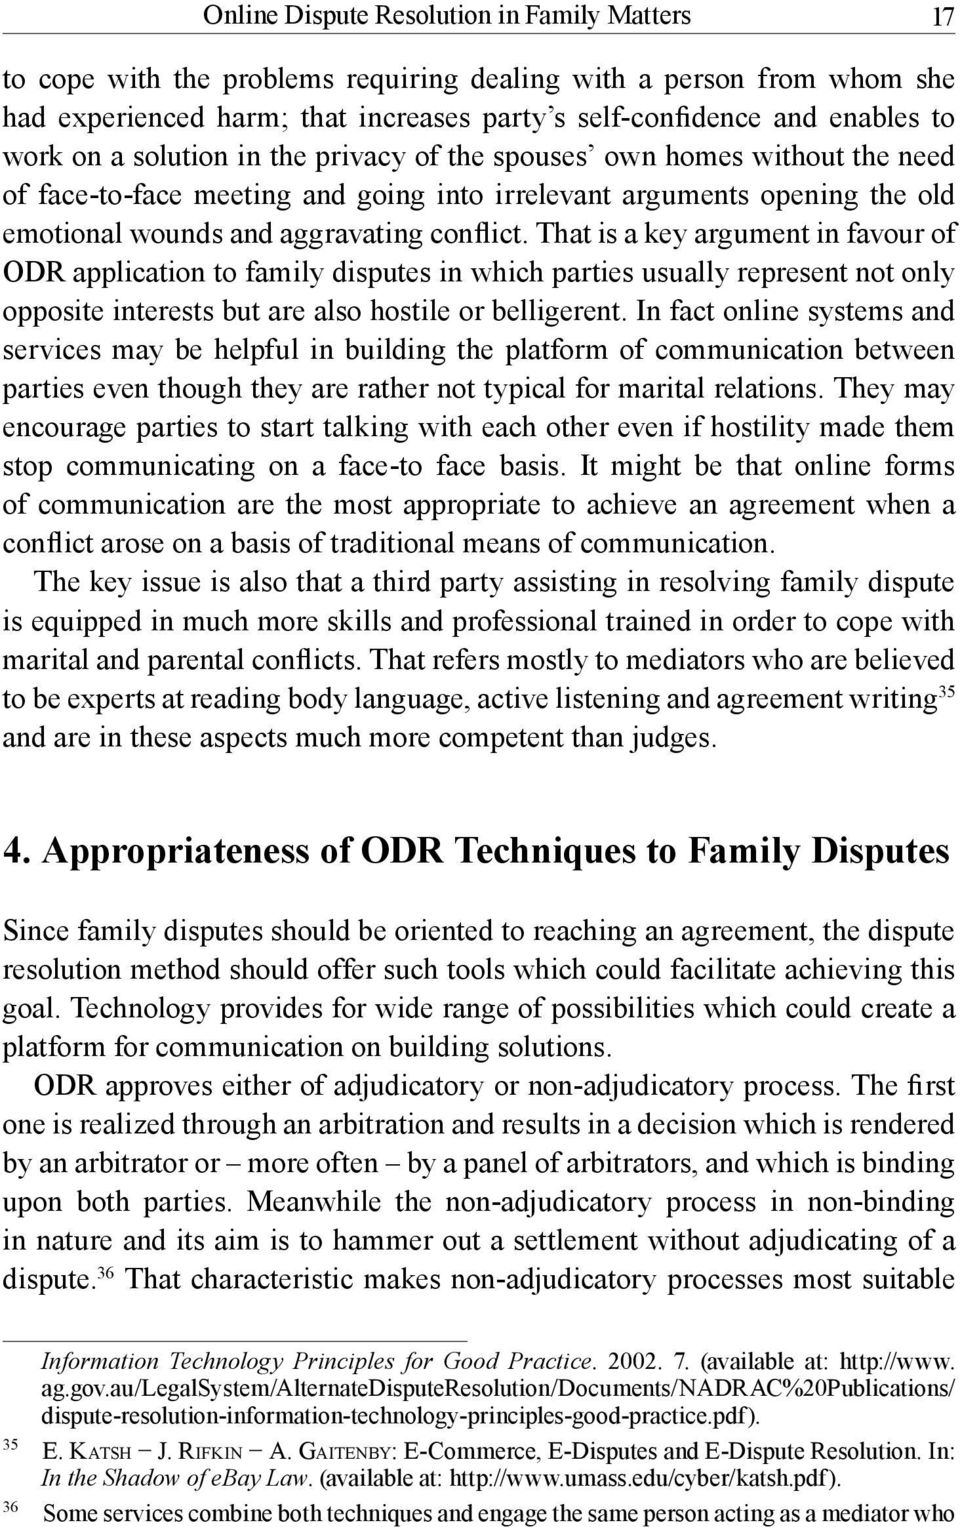 That is a key argument in favour of ODR application to family disputes in which parties usually represent not only opposite interests but are also hostile or belligerent.